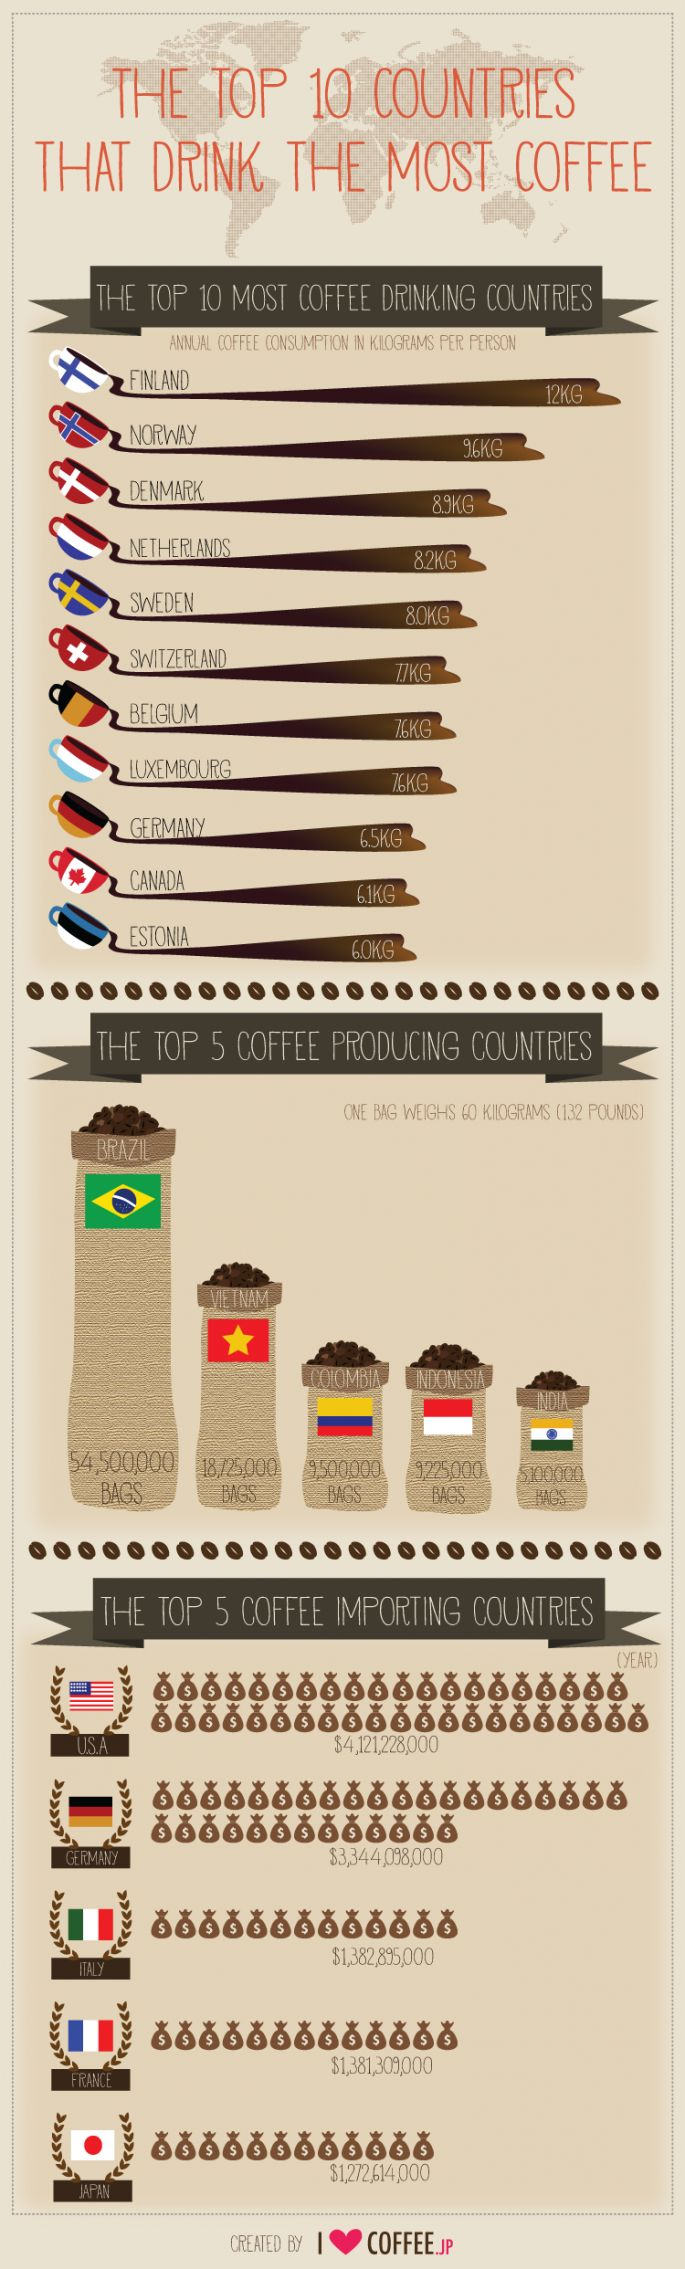 Top 10 Countries That Drink The Most Coffee